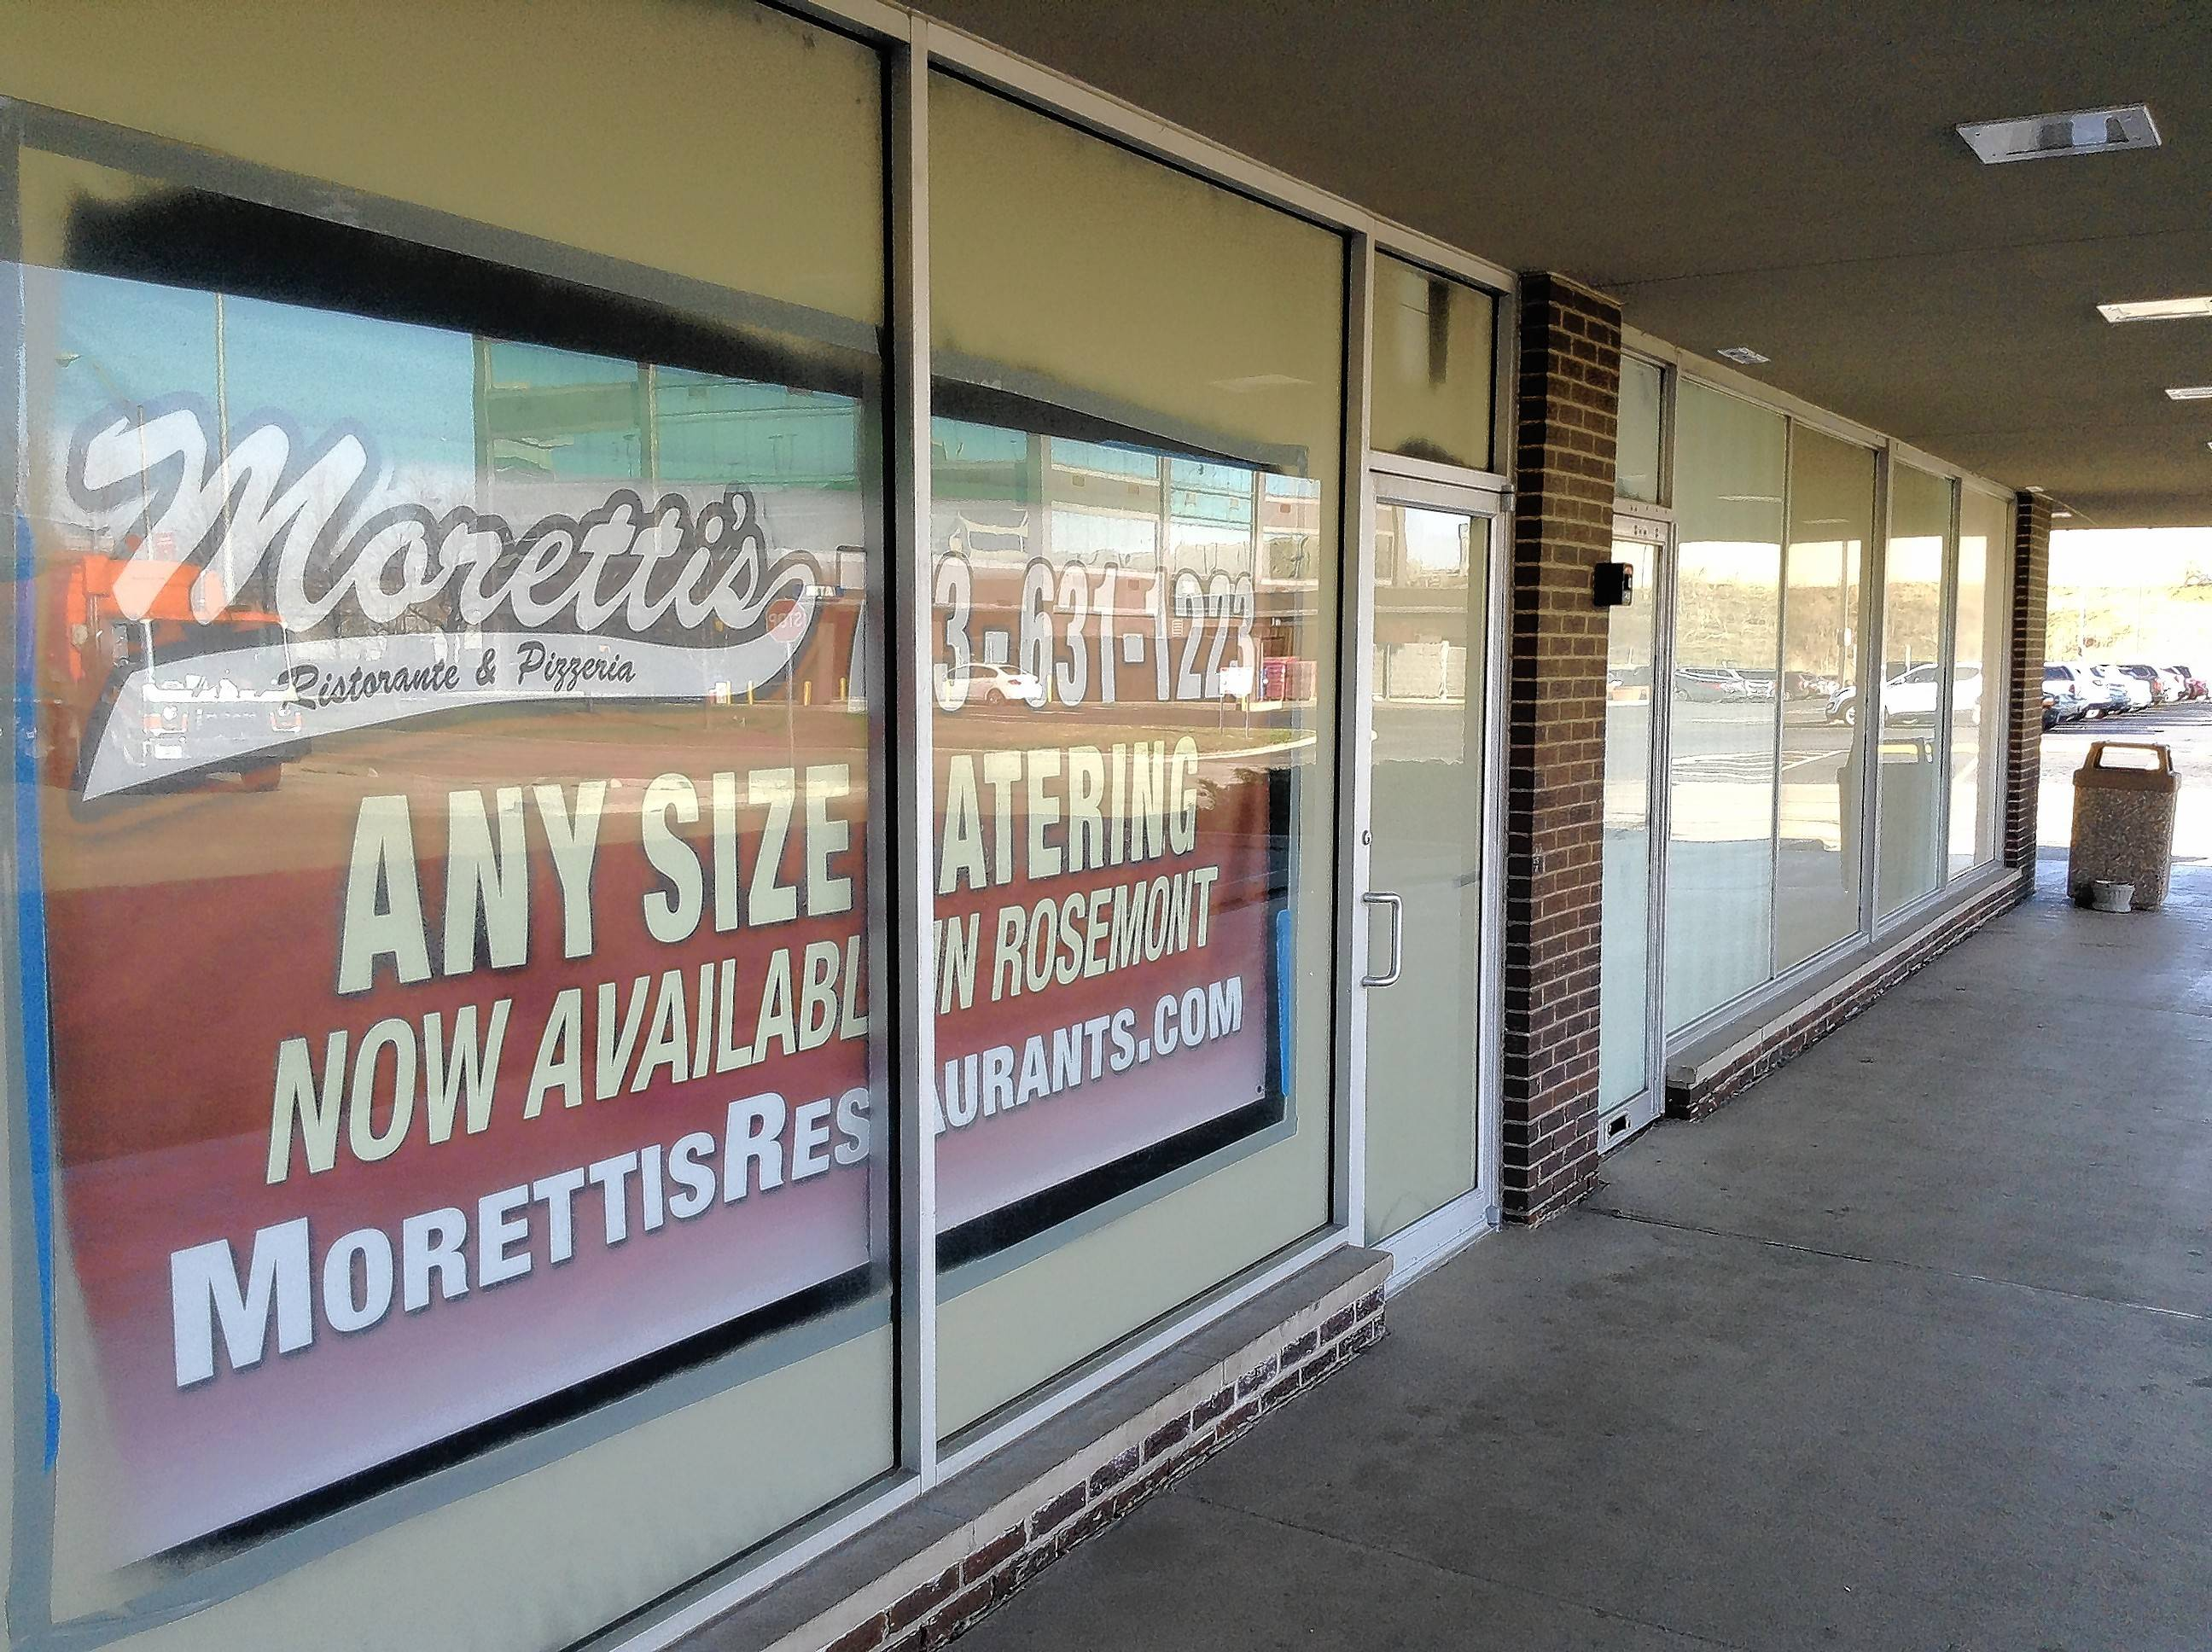 Rosemont pledges $500,000 to Moretti's to spur opening